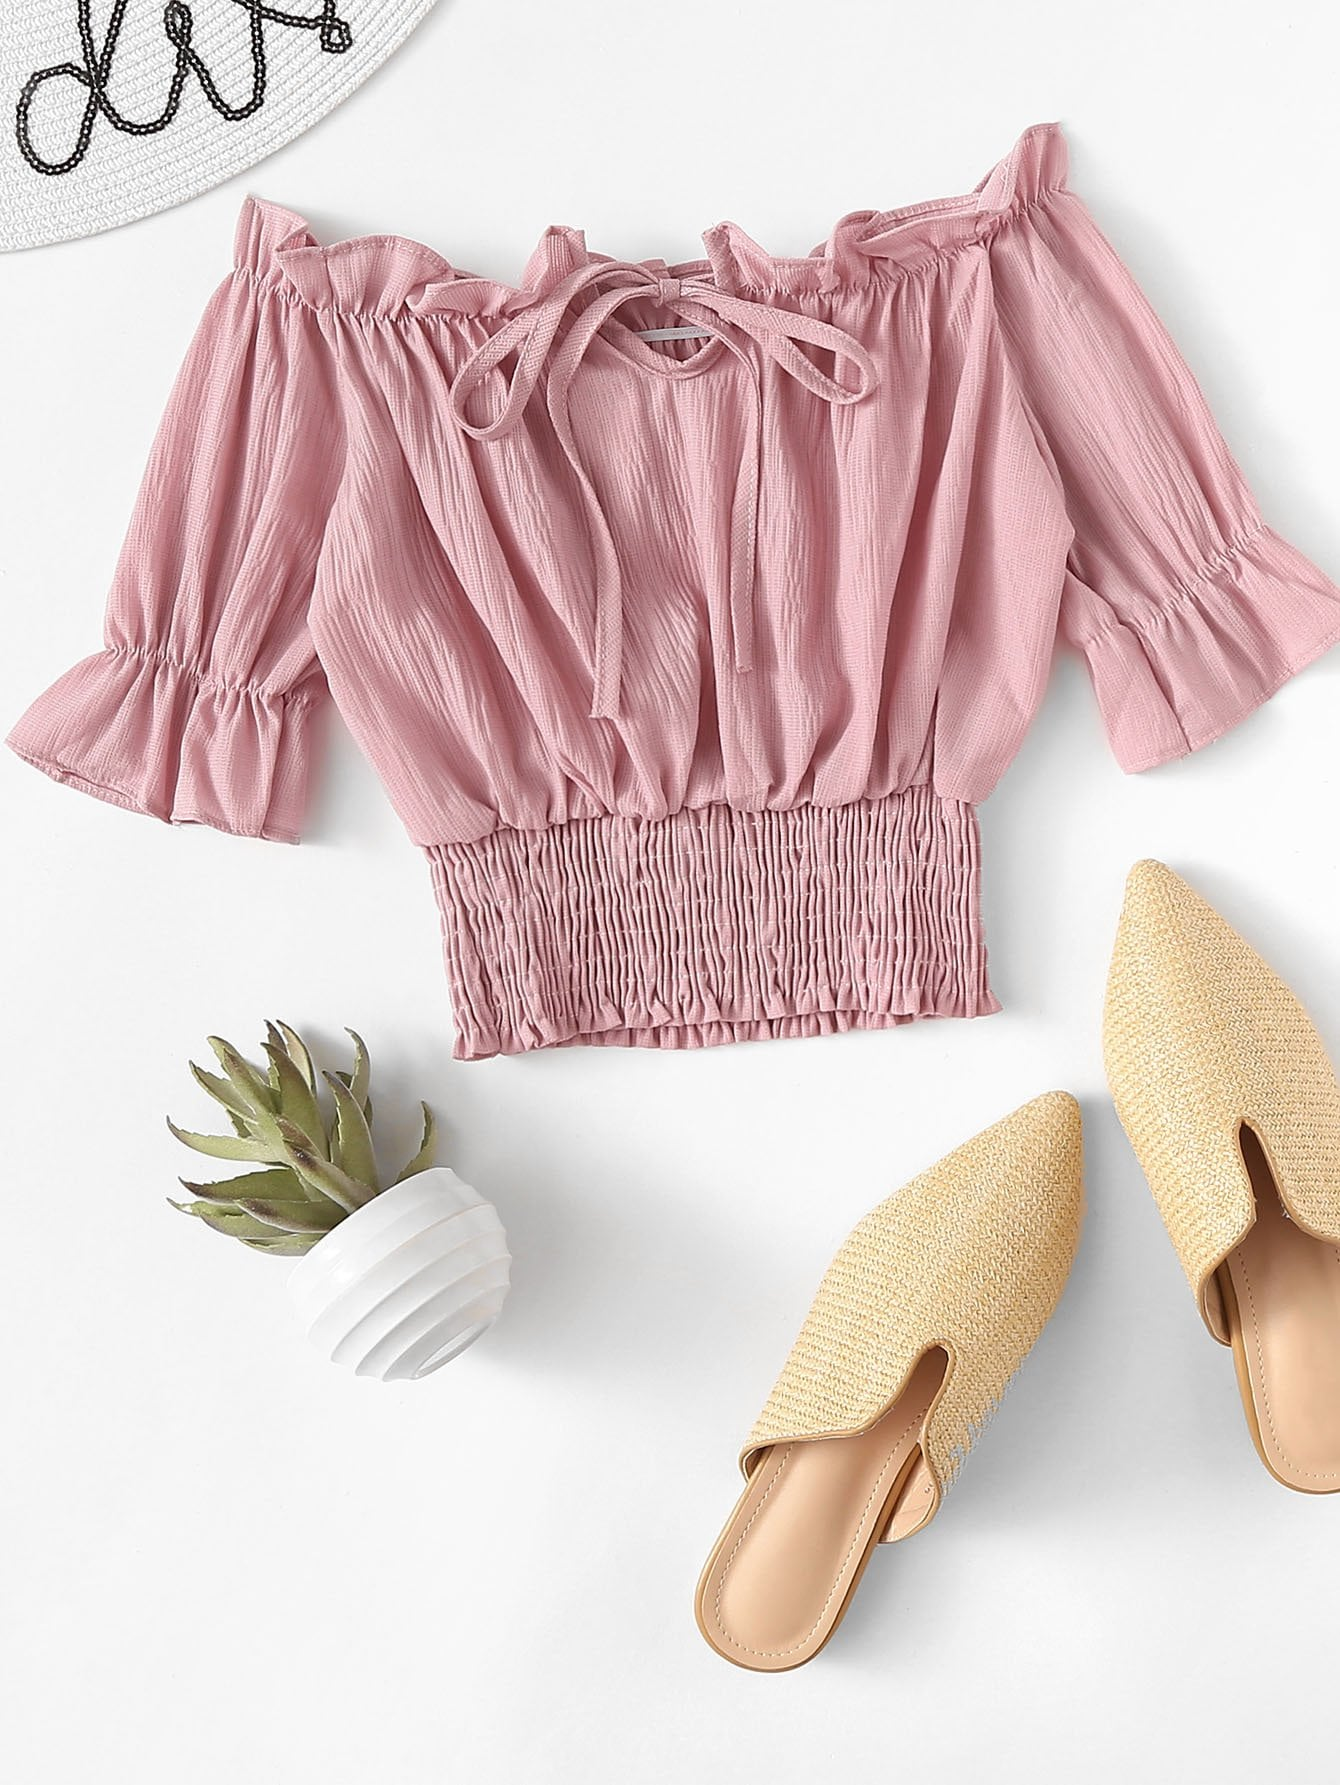 Flounce Sleeve Frill Trim Smocked Blouse by Romwe